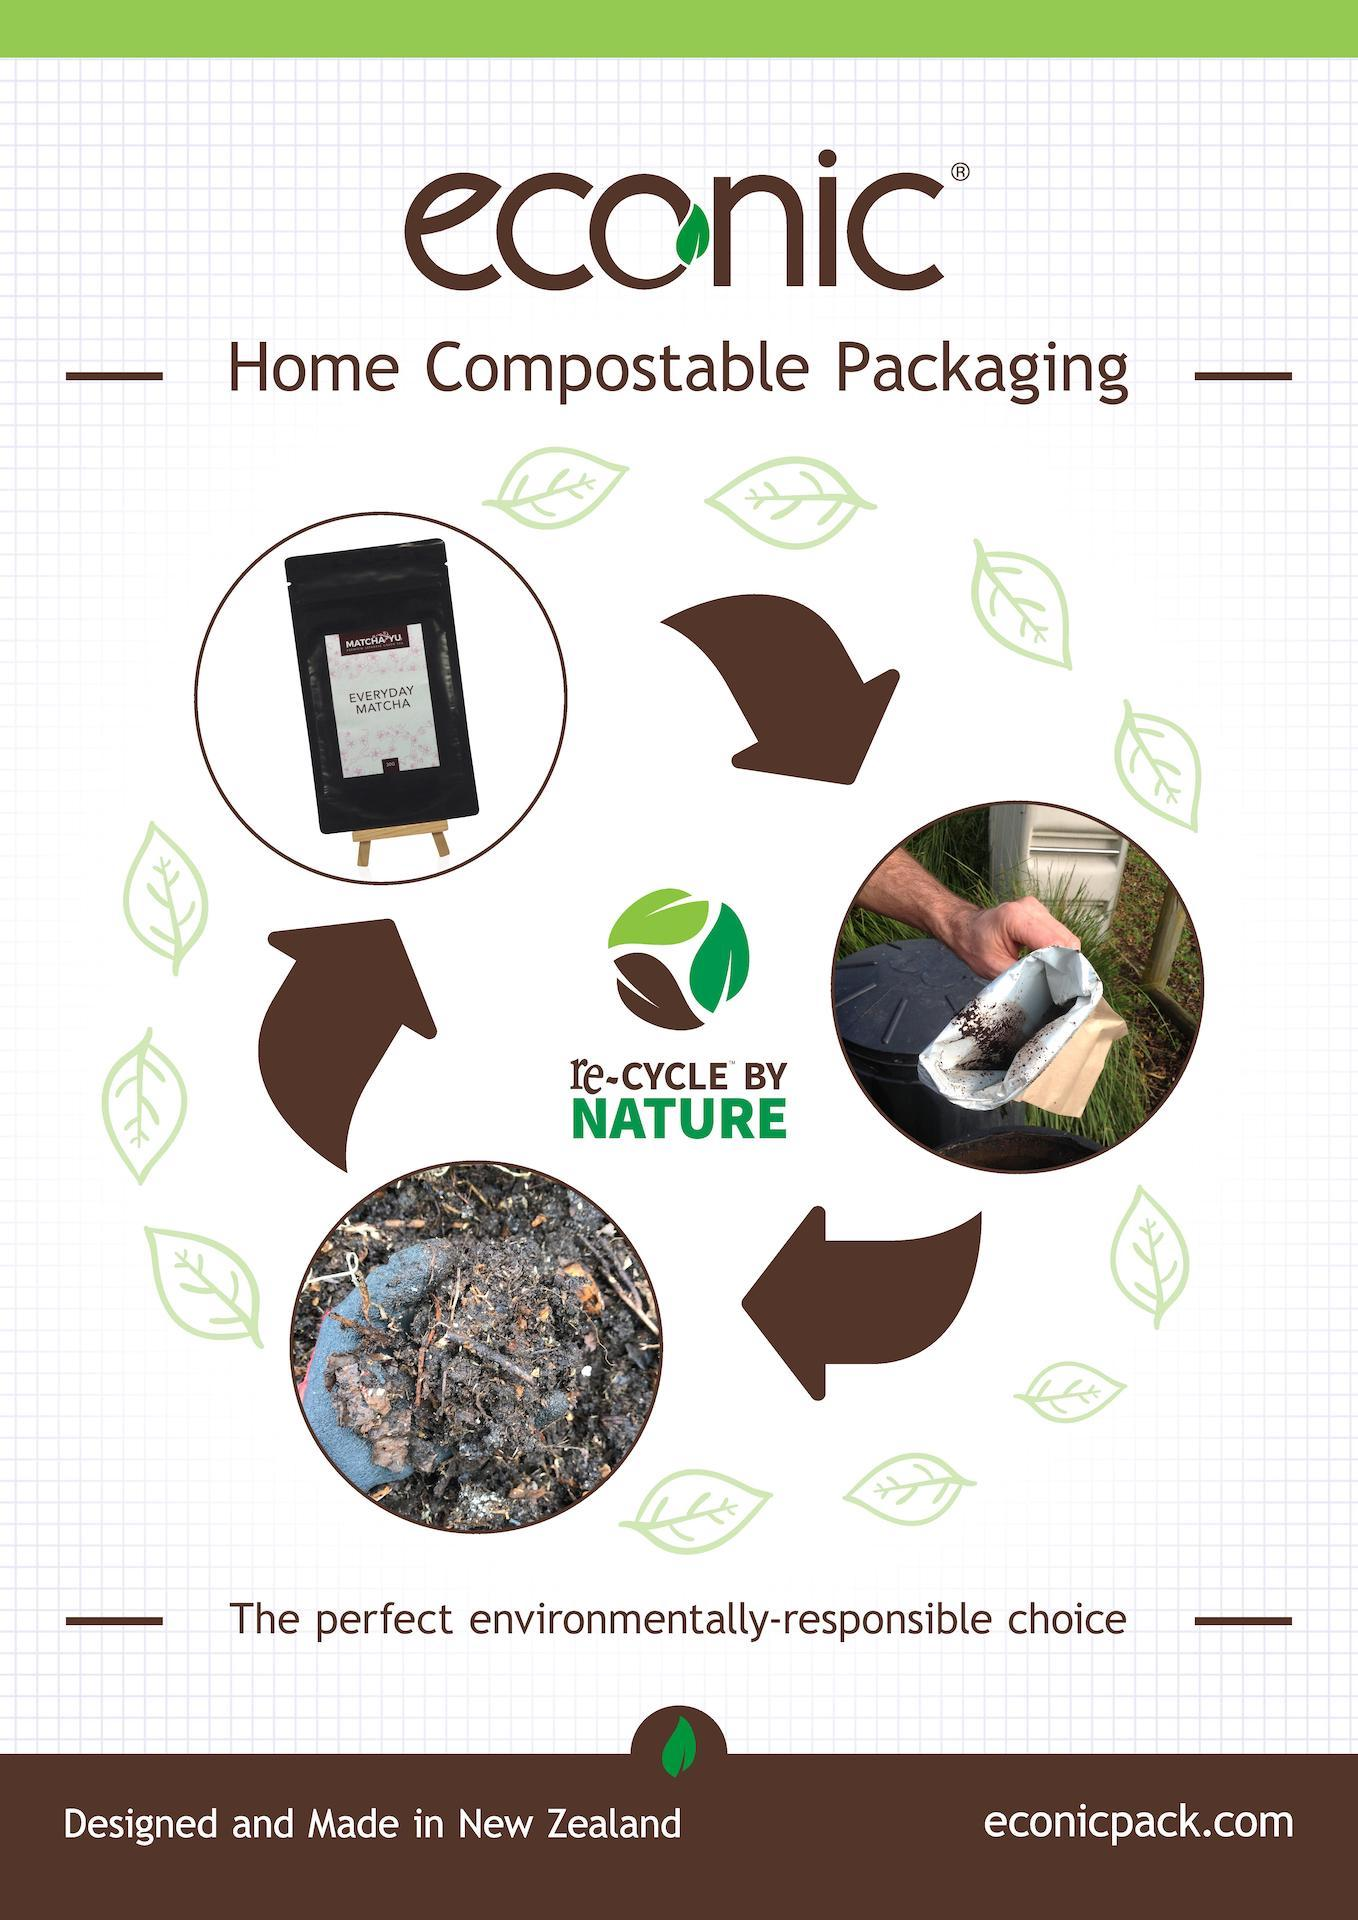 Econic home compostable packaging